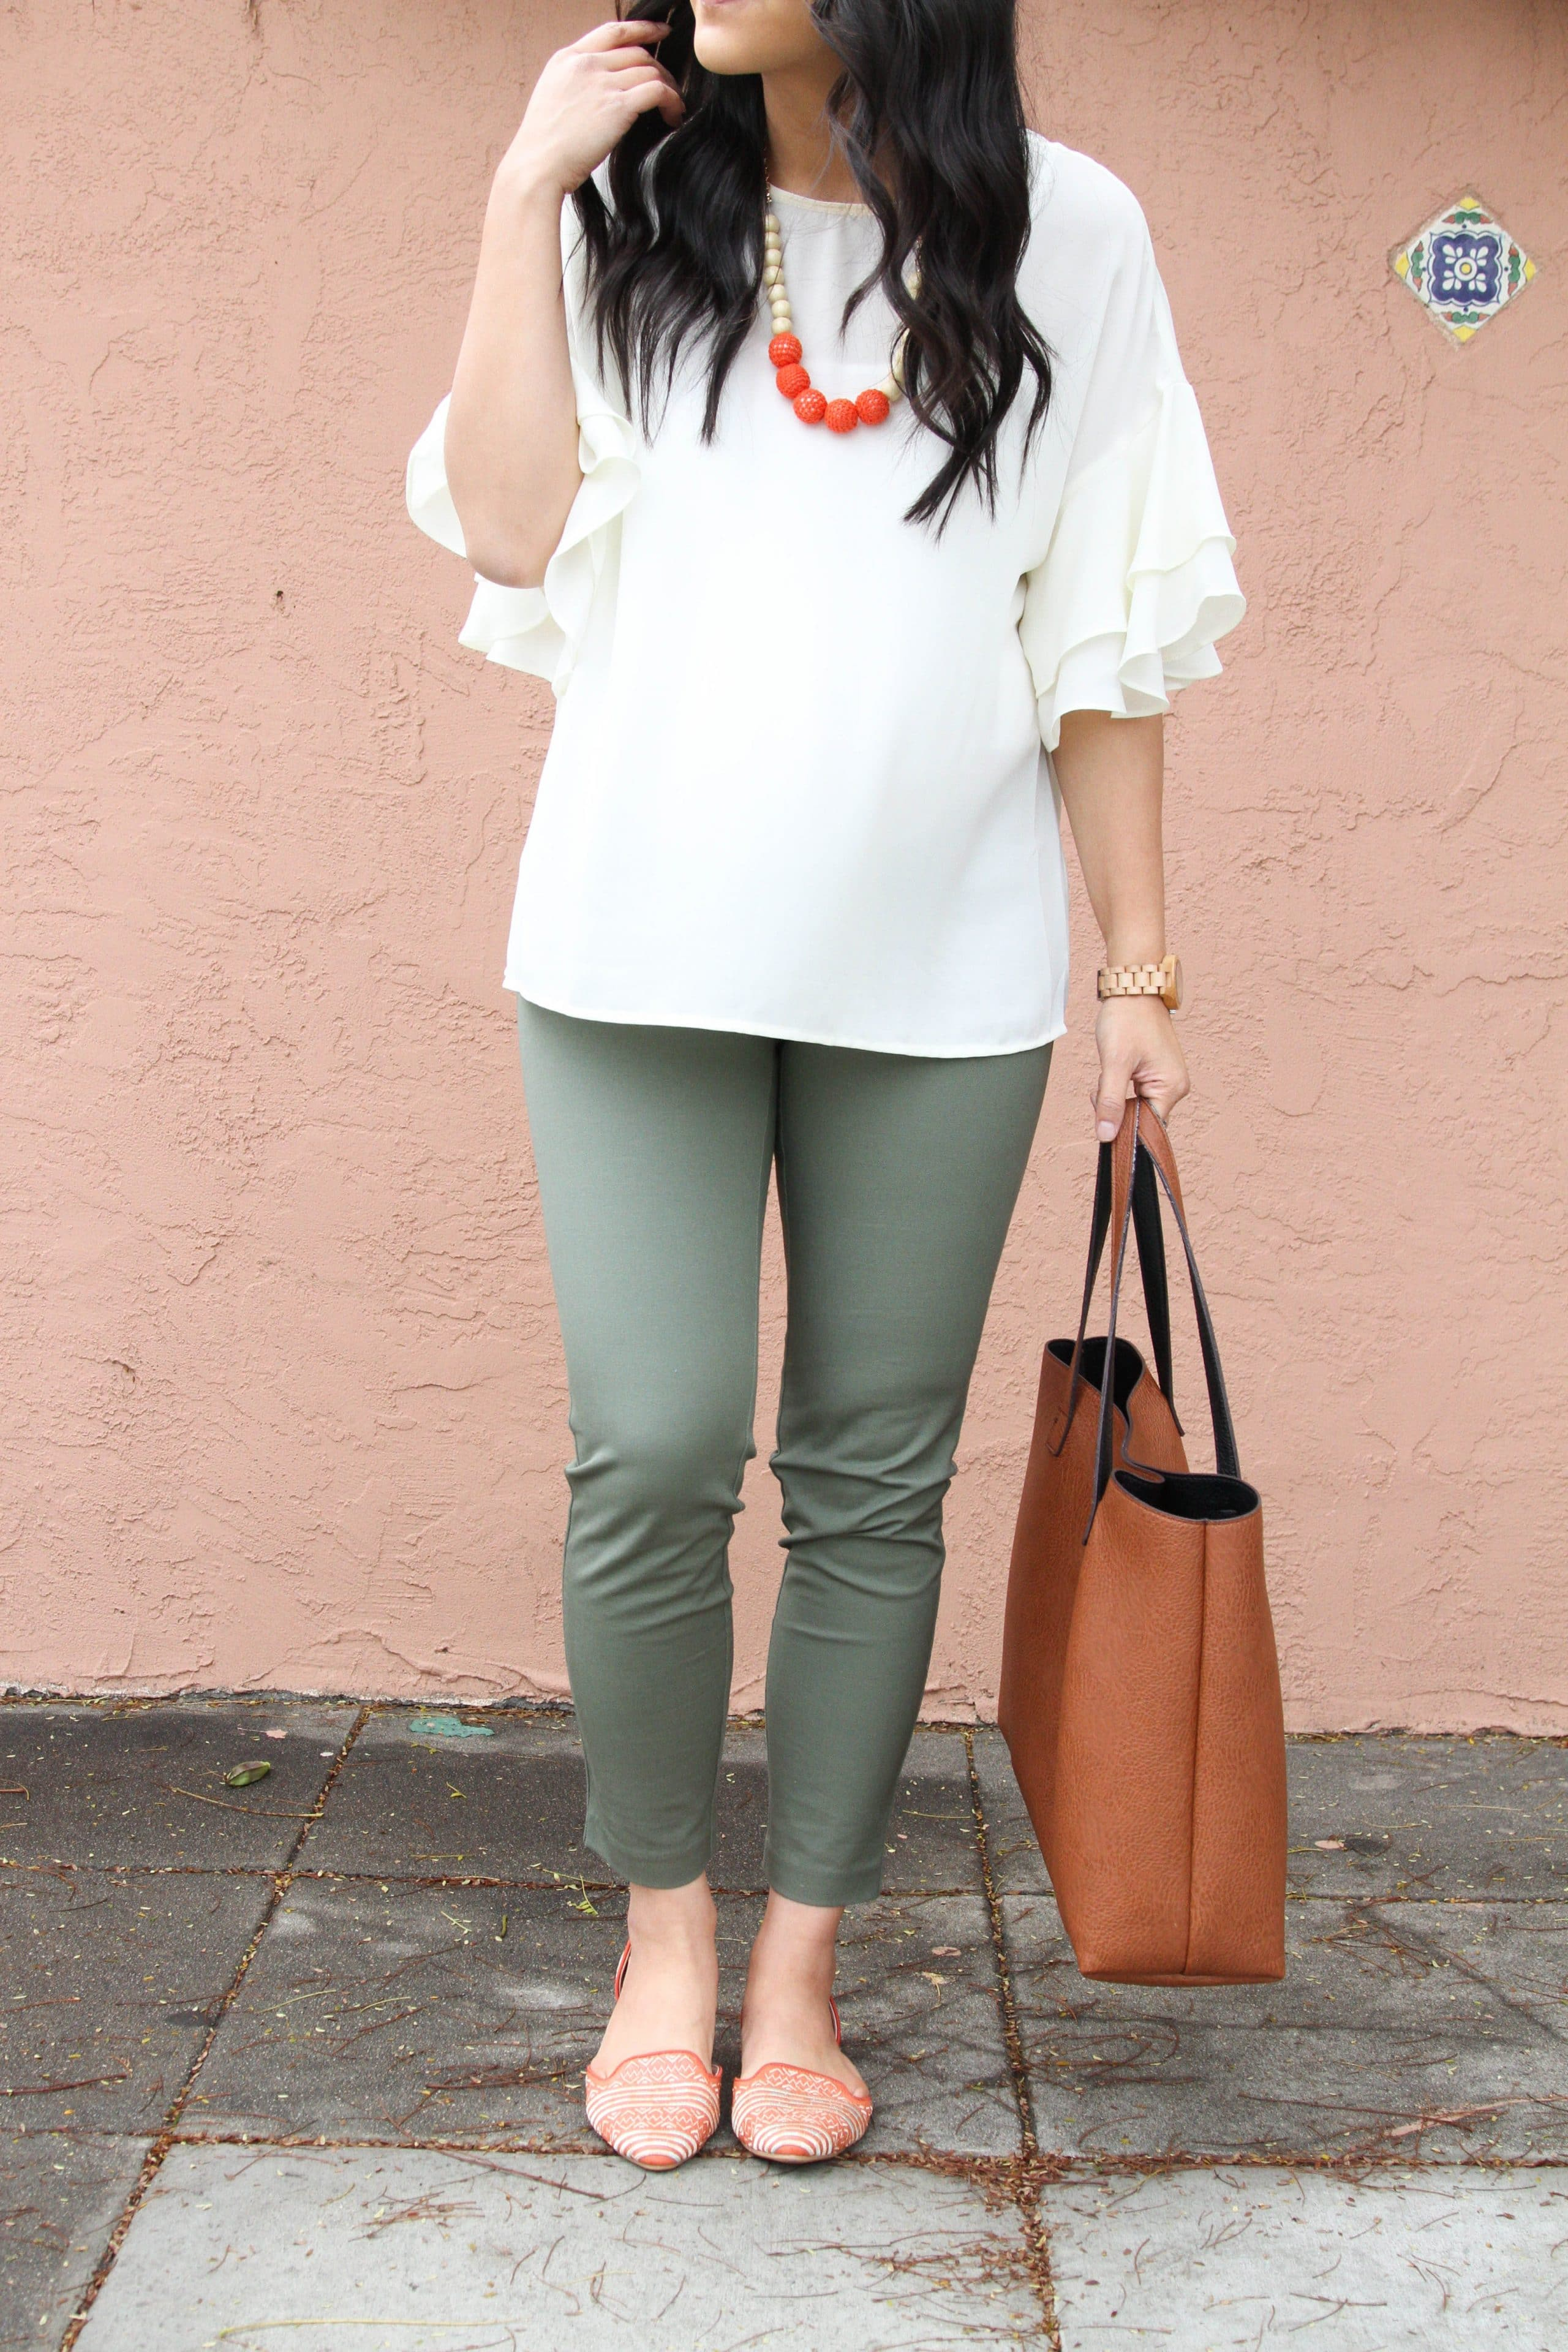 White Bell Sleeves Blouse + Green Chinos + Cognac Tote + Statement Necklace